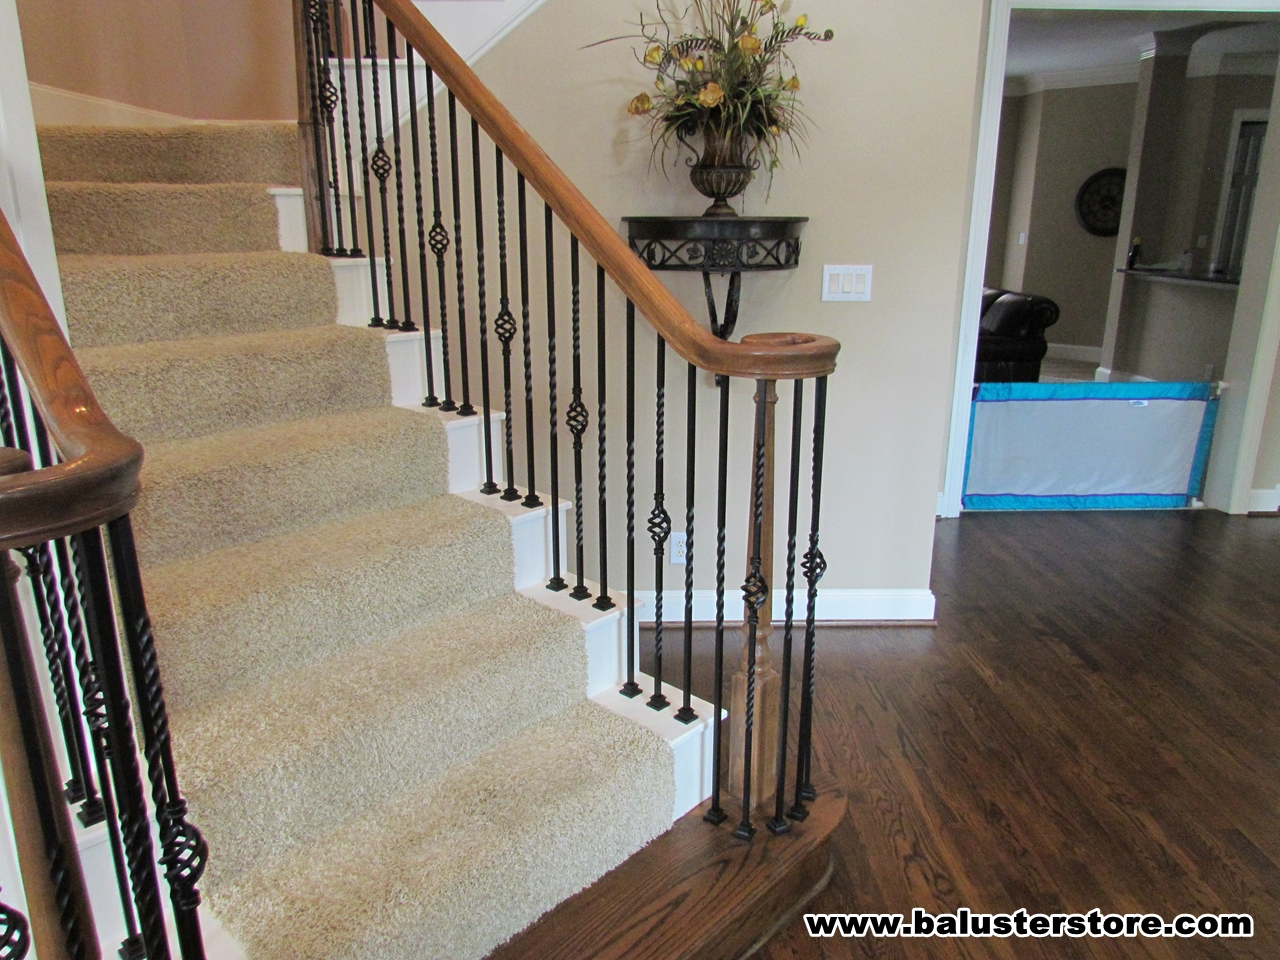 Single Twist - single basket iron balusters